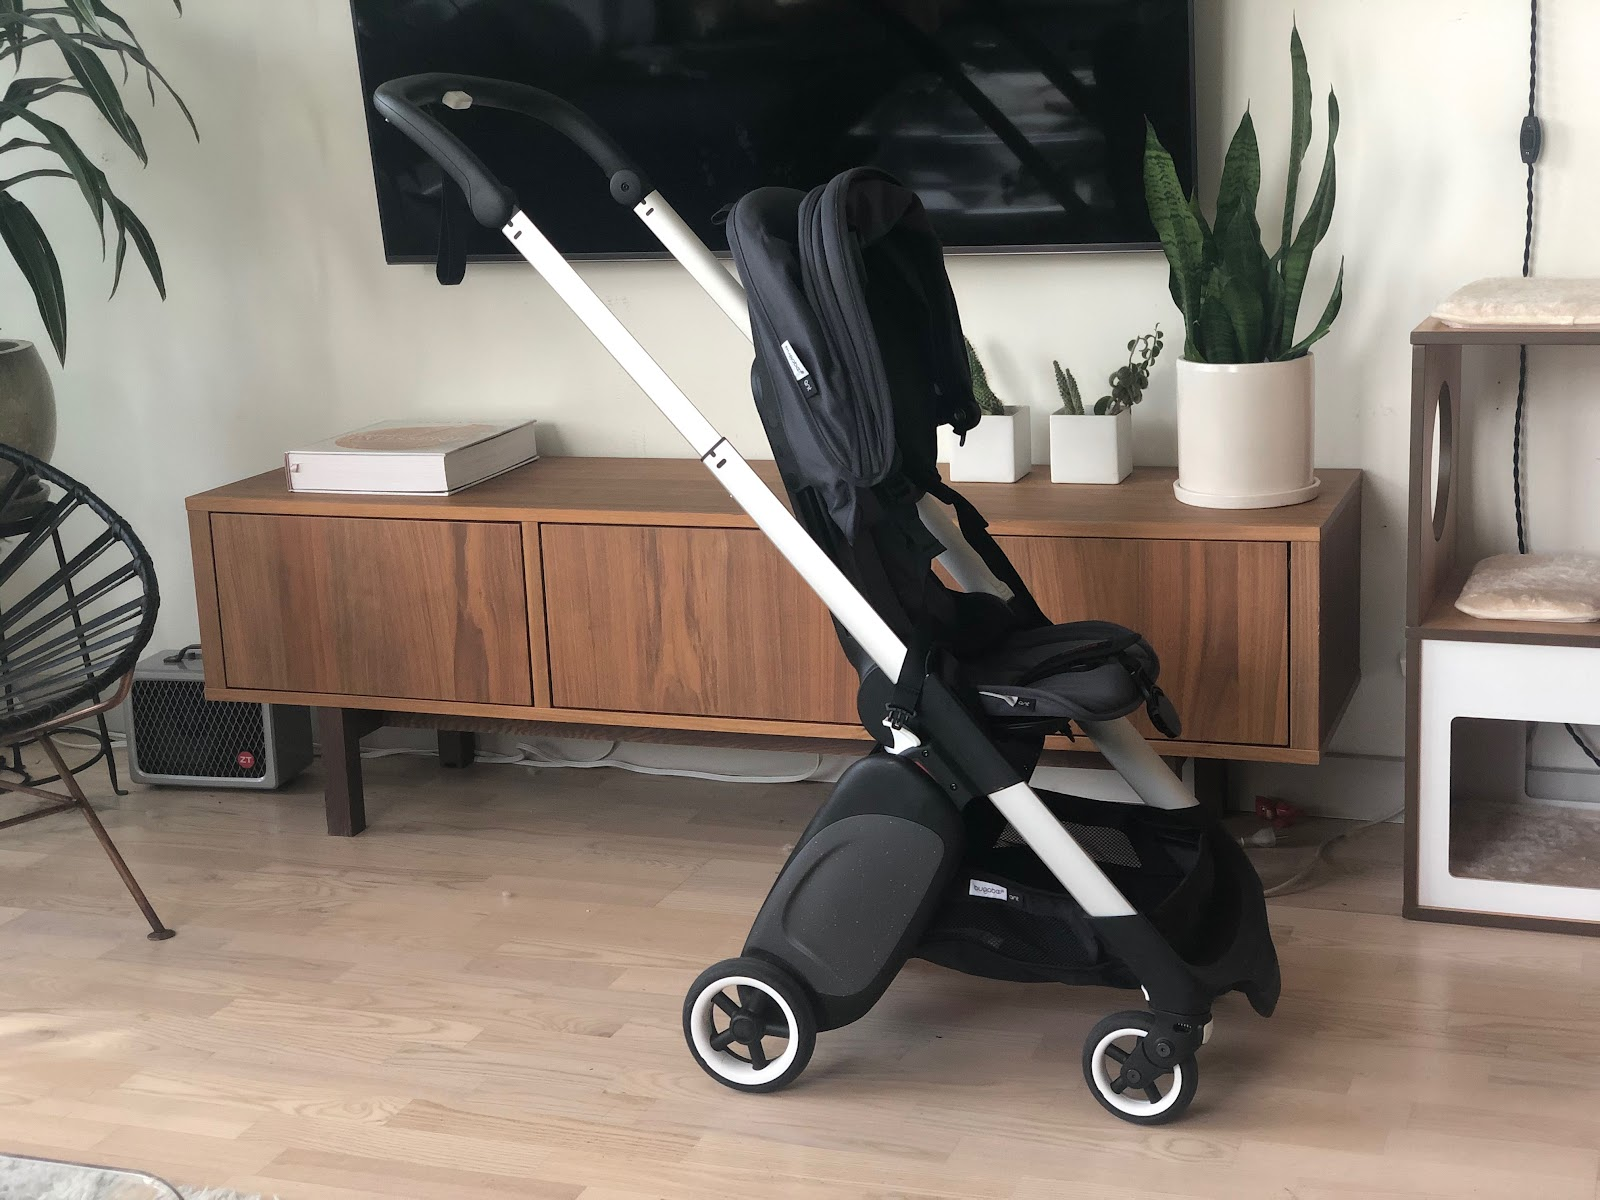 bugaboo ant stroller review: upright position